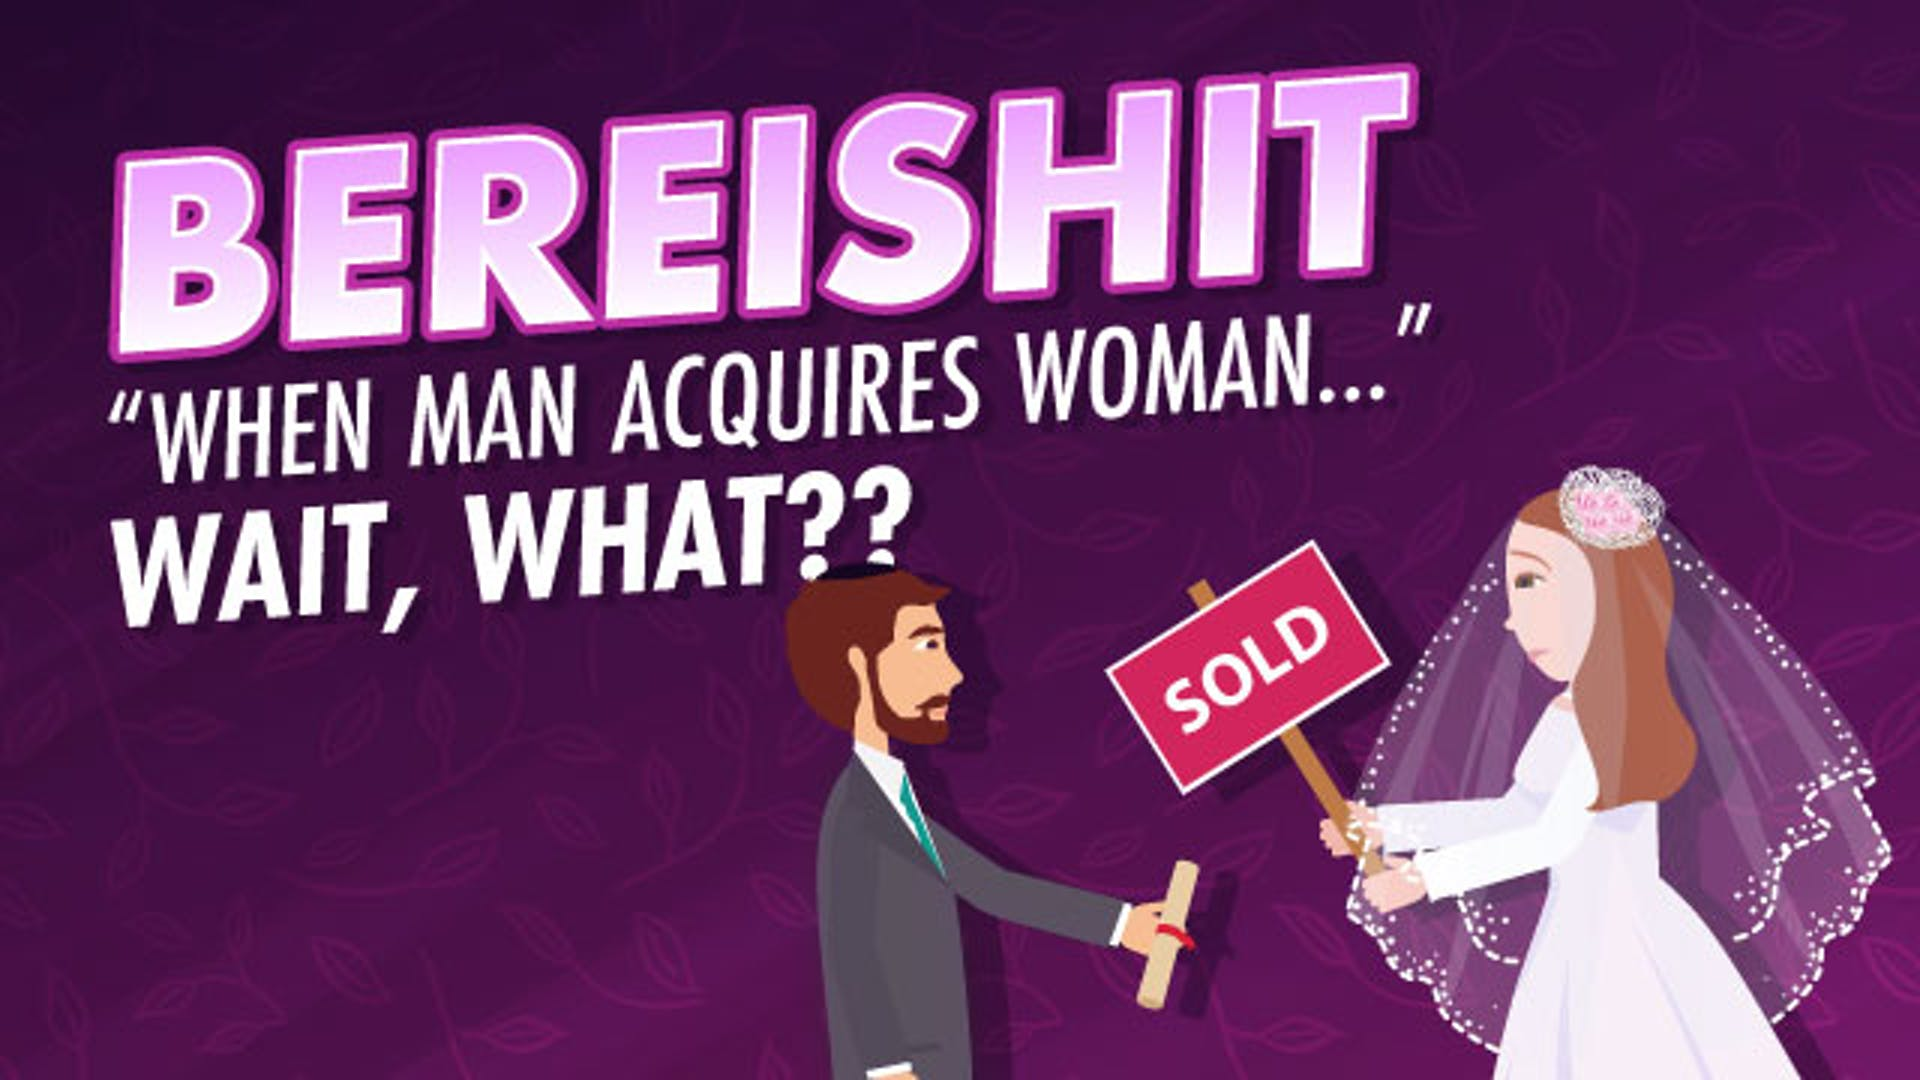 The Torah's View of Marriage: Man 'Acquires' Woman... What?   Aleph Beta